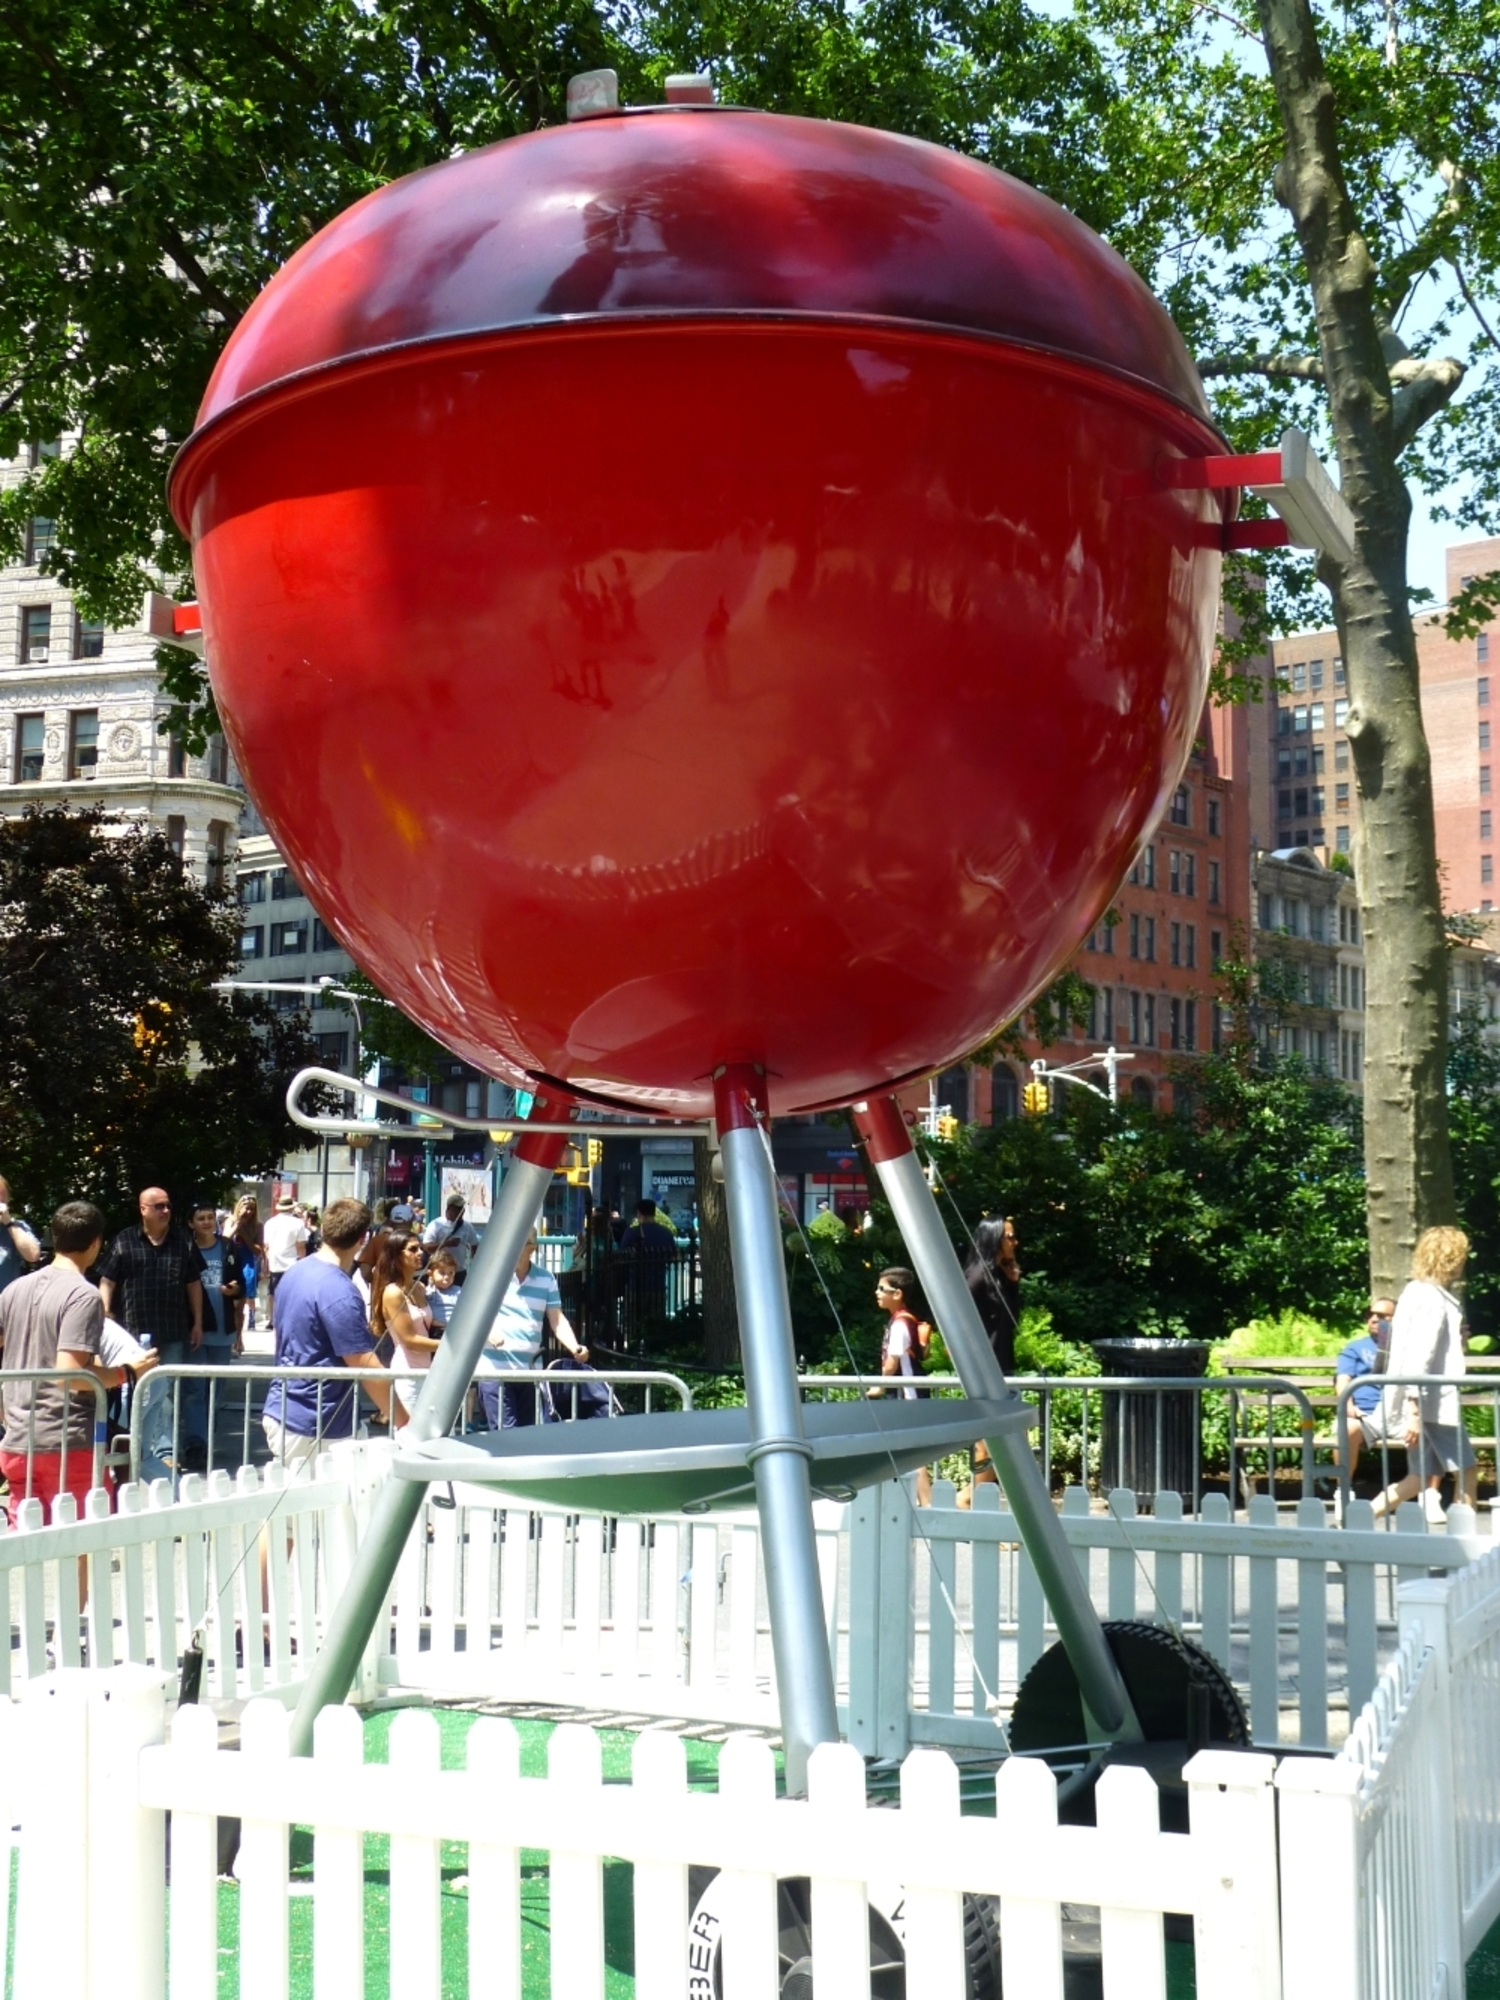 Giant Weber Grill, Madison Square Park NYC | Big Apple Barbecue Block Party, 9 June 2013